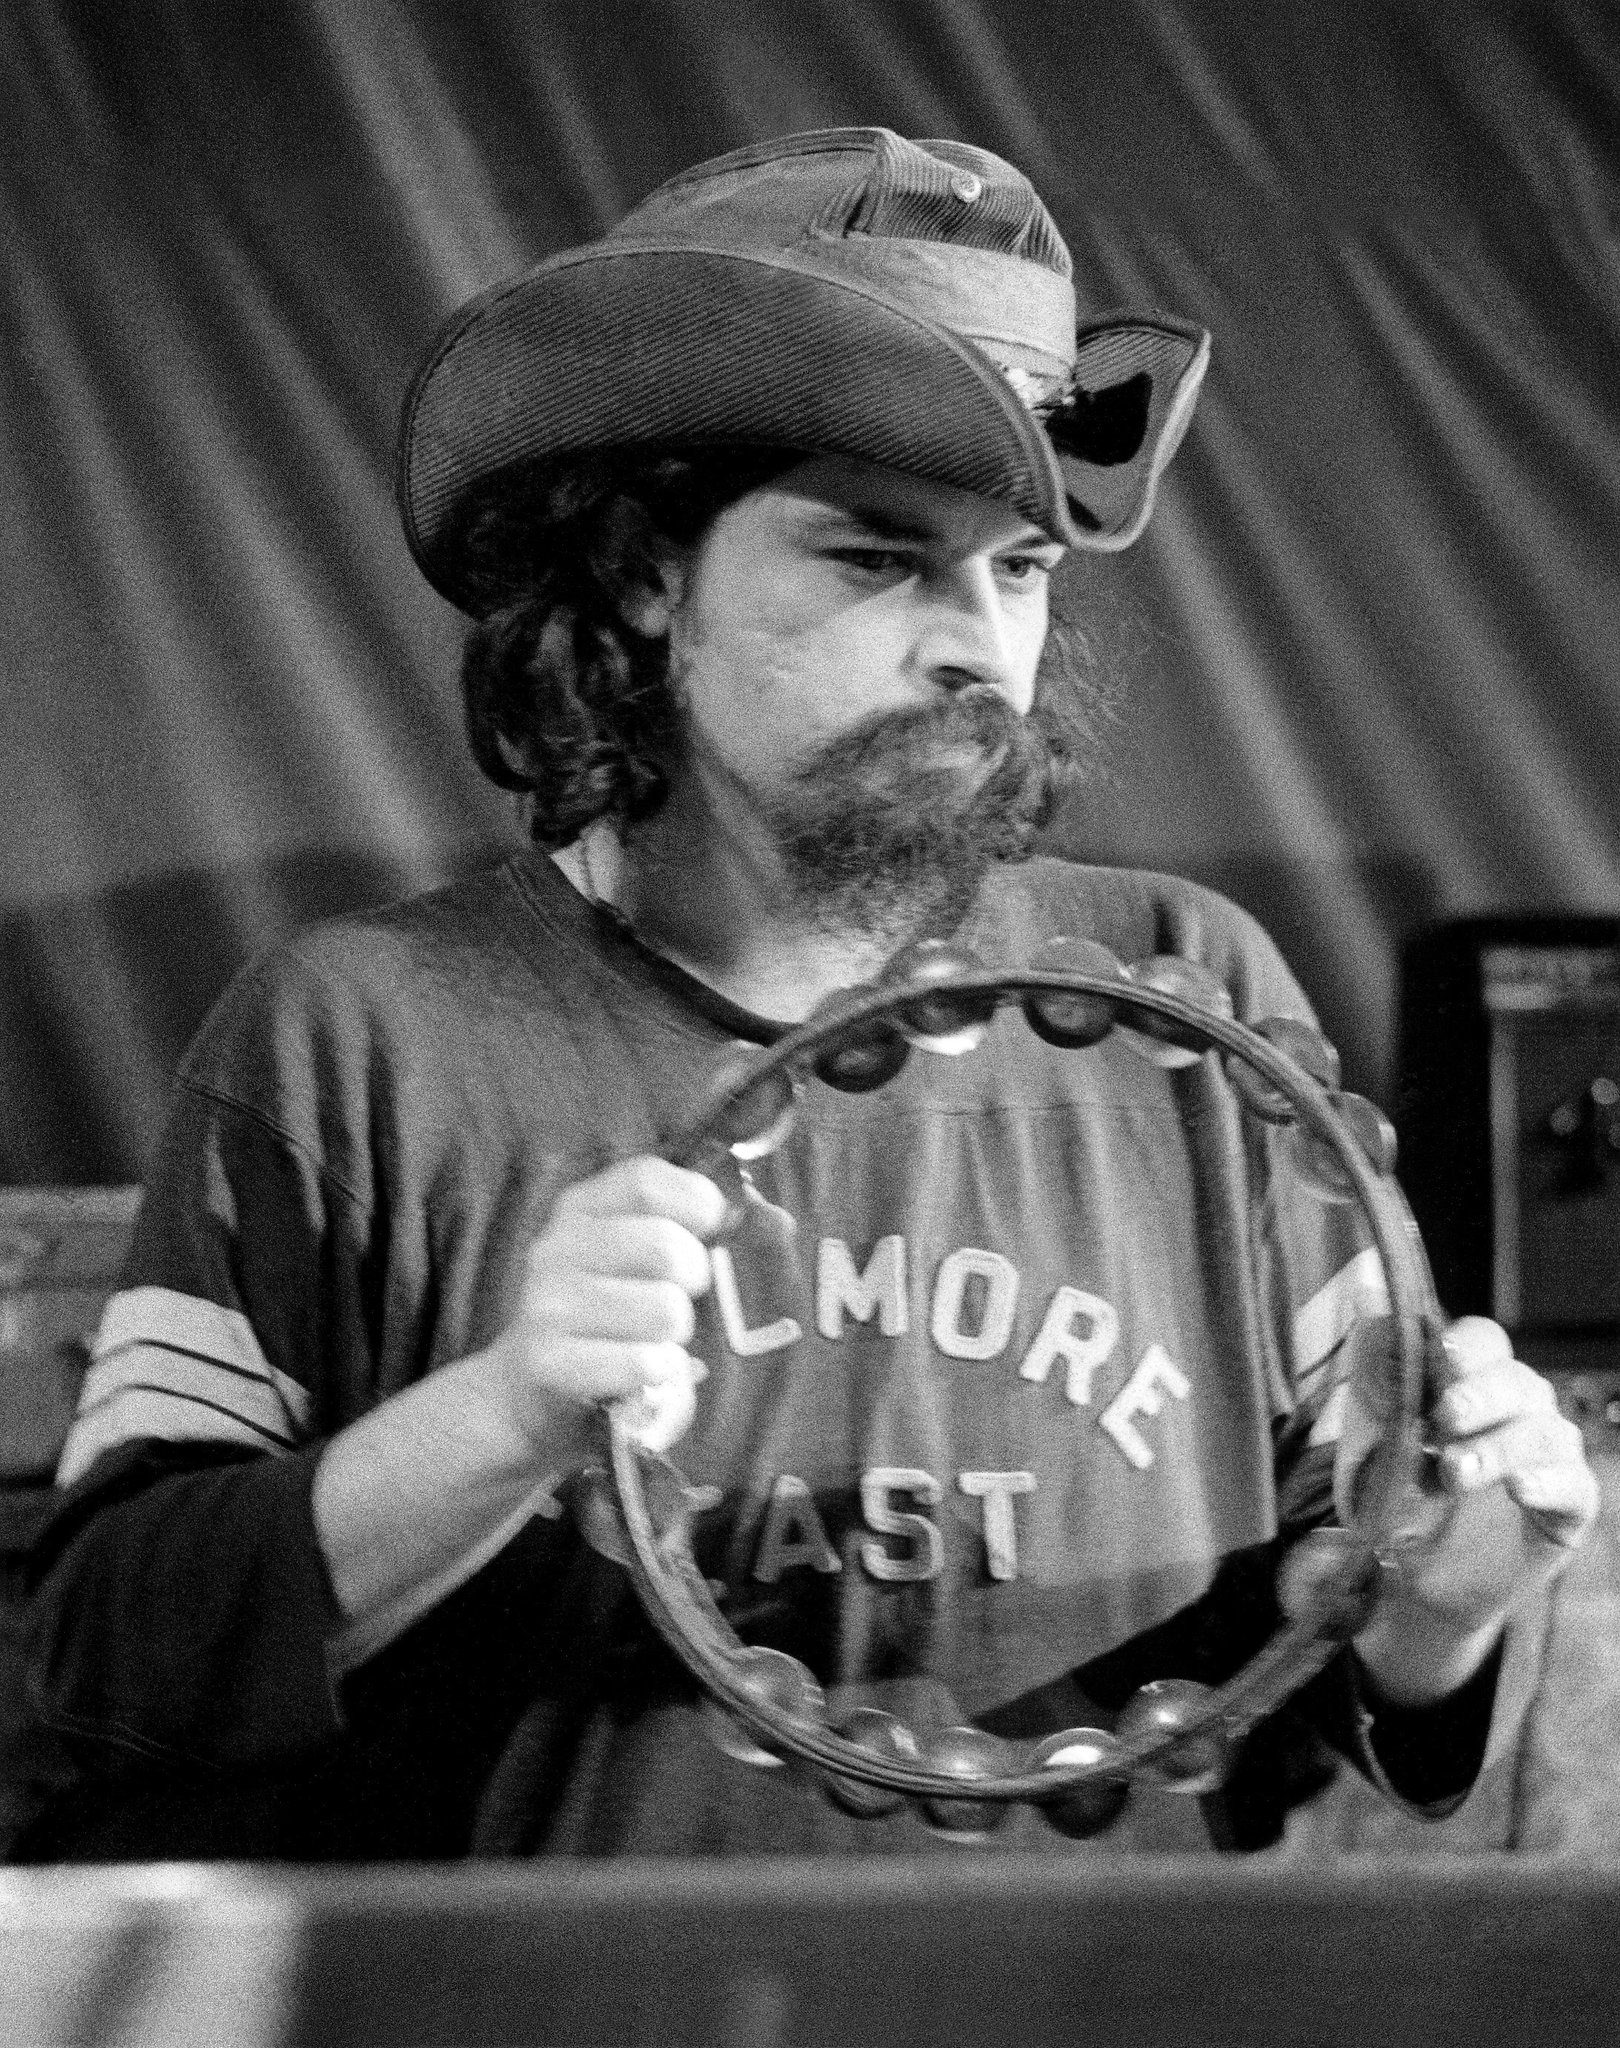 """Pigpen was kinda like the persona of the Grateful Dead."" - John Perry Barlow Happy Birthday Pigpen! https://t.co/F6PQTKDlKI"